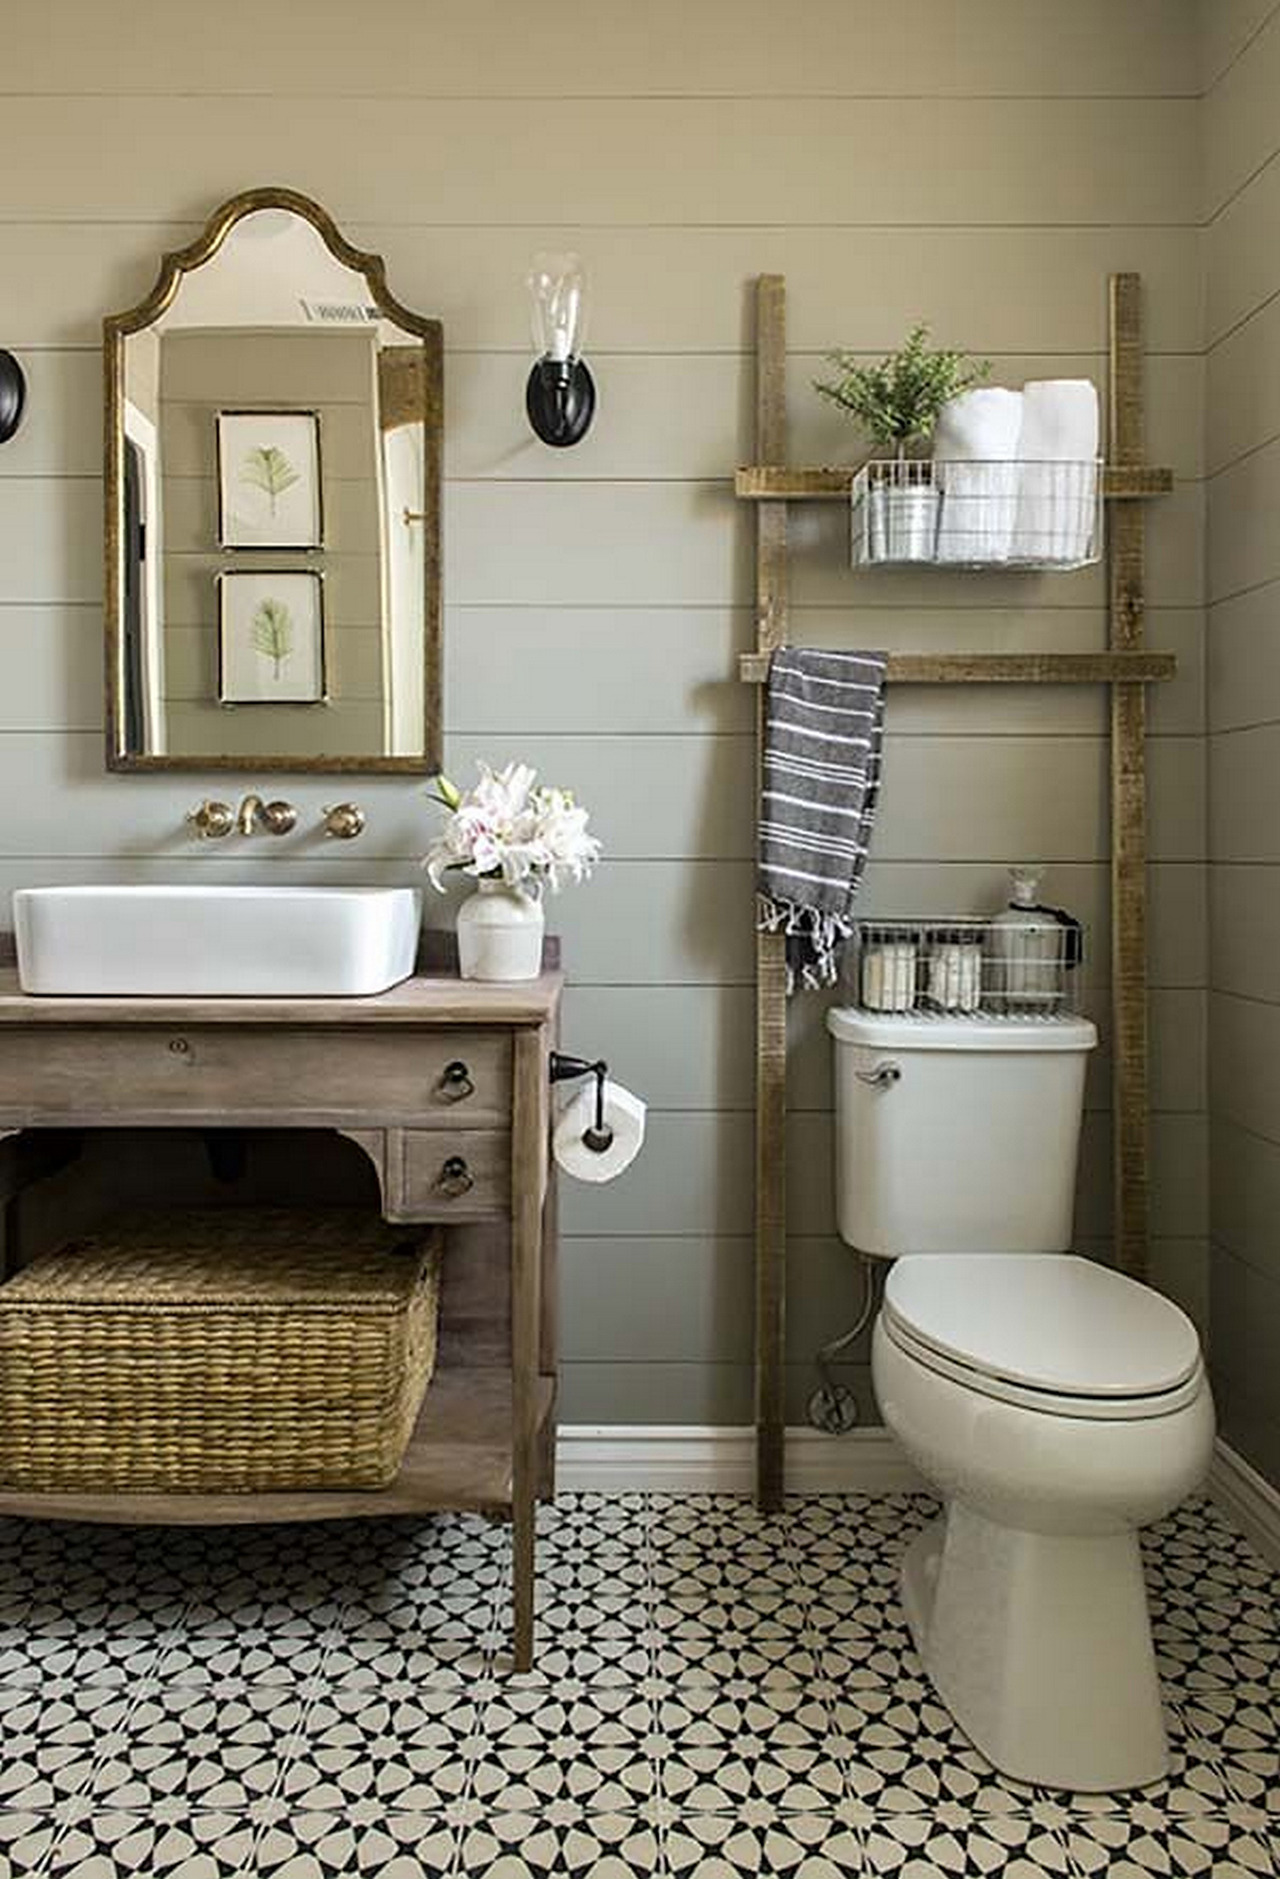 Accessories for Bathroom Decoration Luxury 25 Best Bathroom Decor Ideas and Designs that are Trendy In 2020